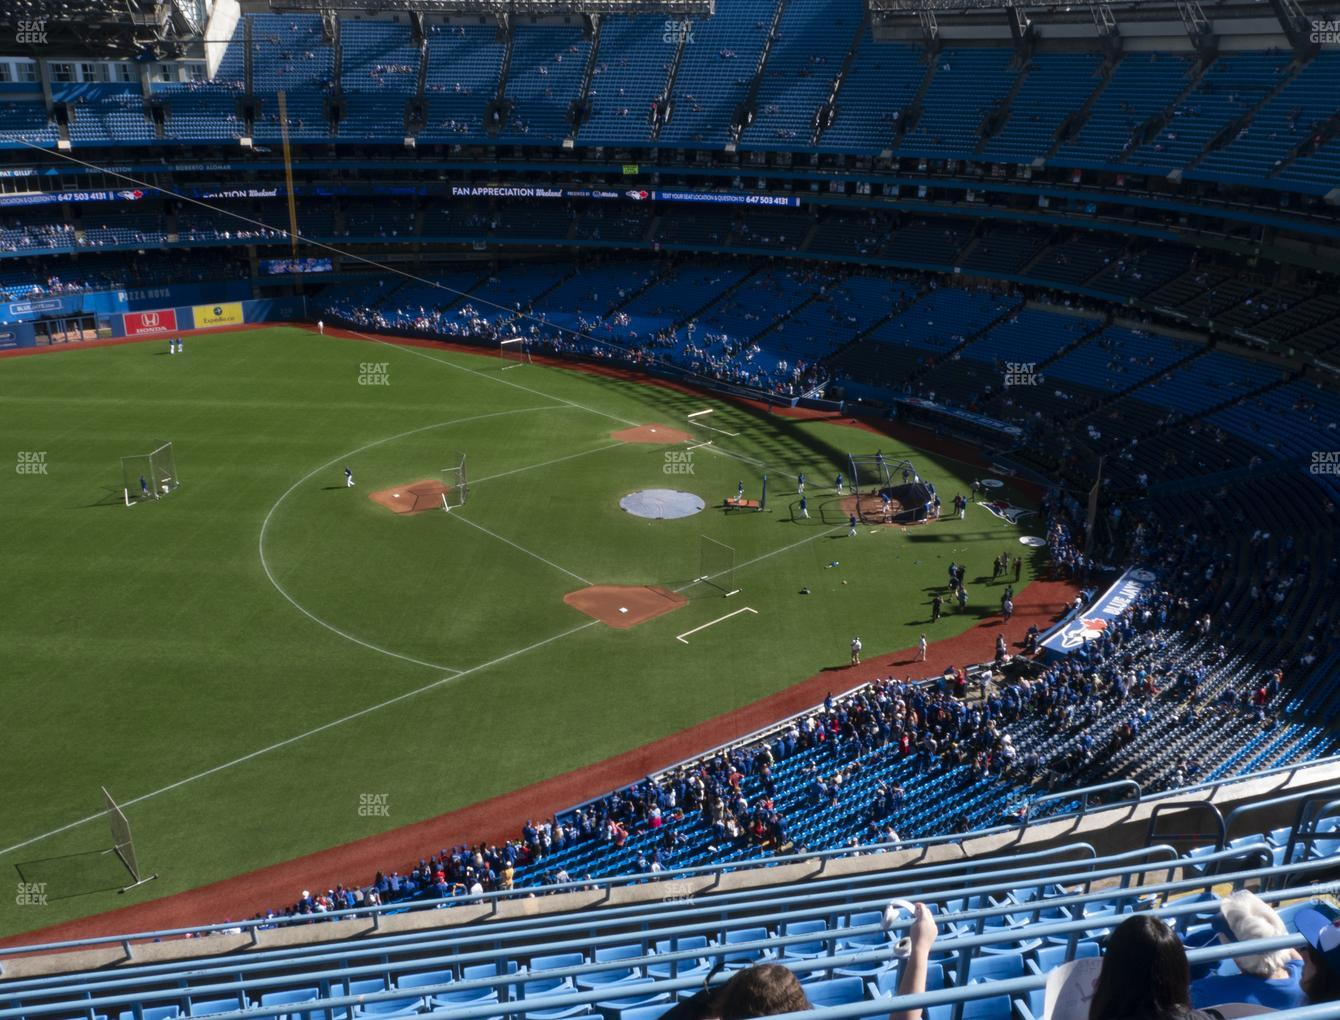 Toronto Blue Jays at Rogers Centre Section 534 L View